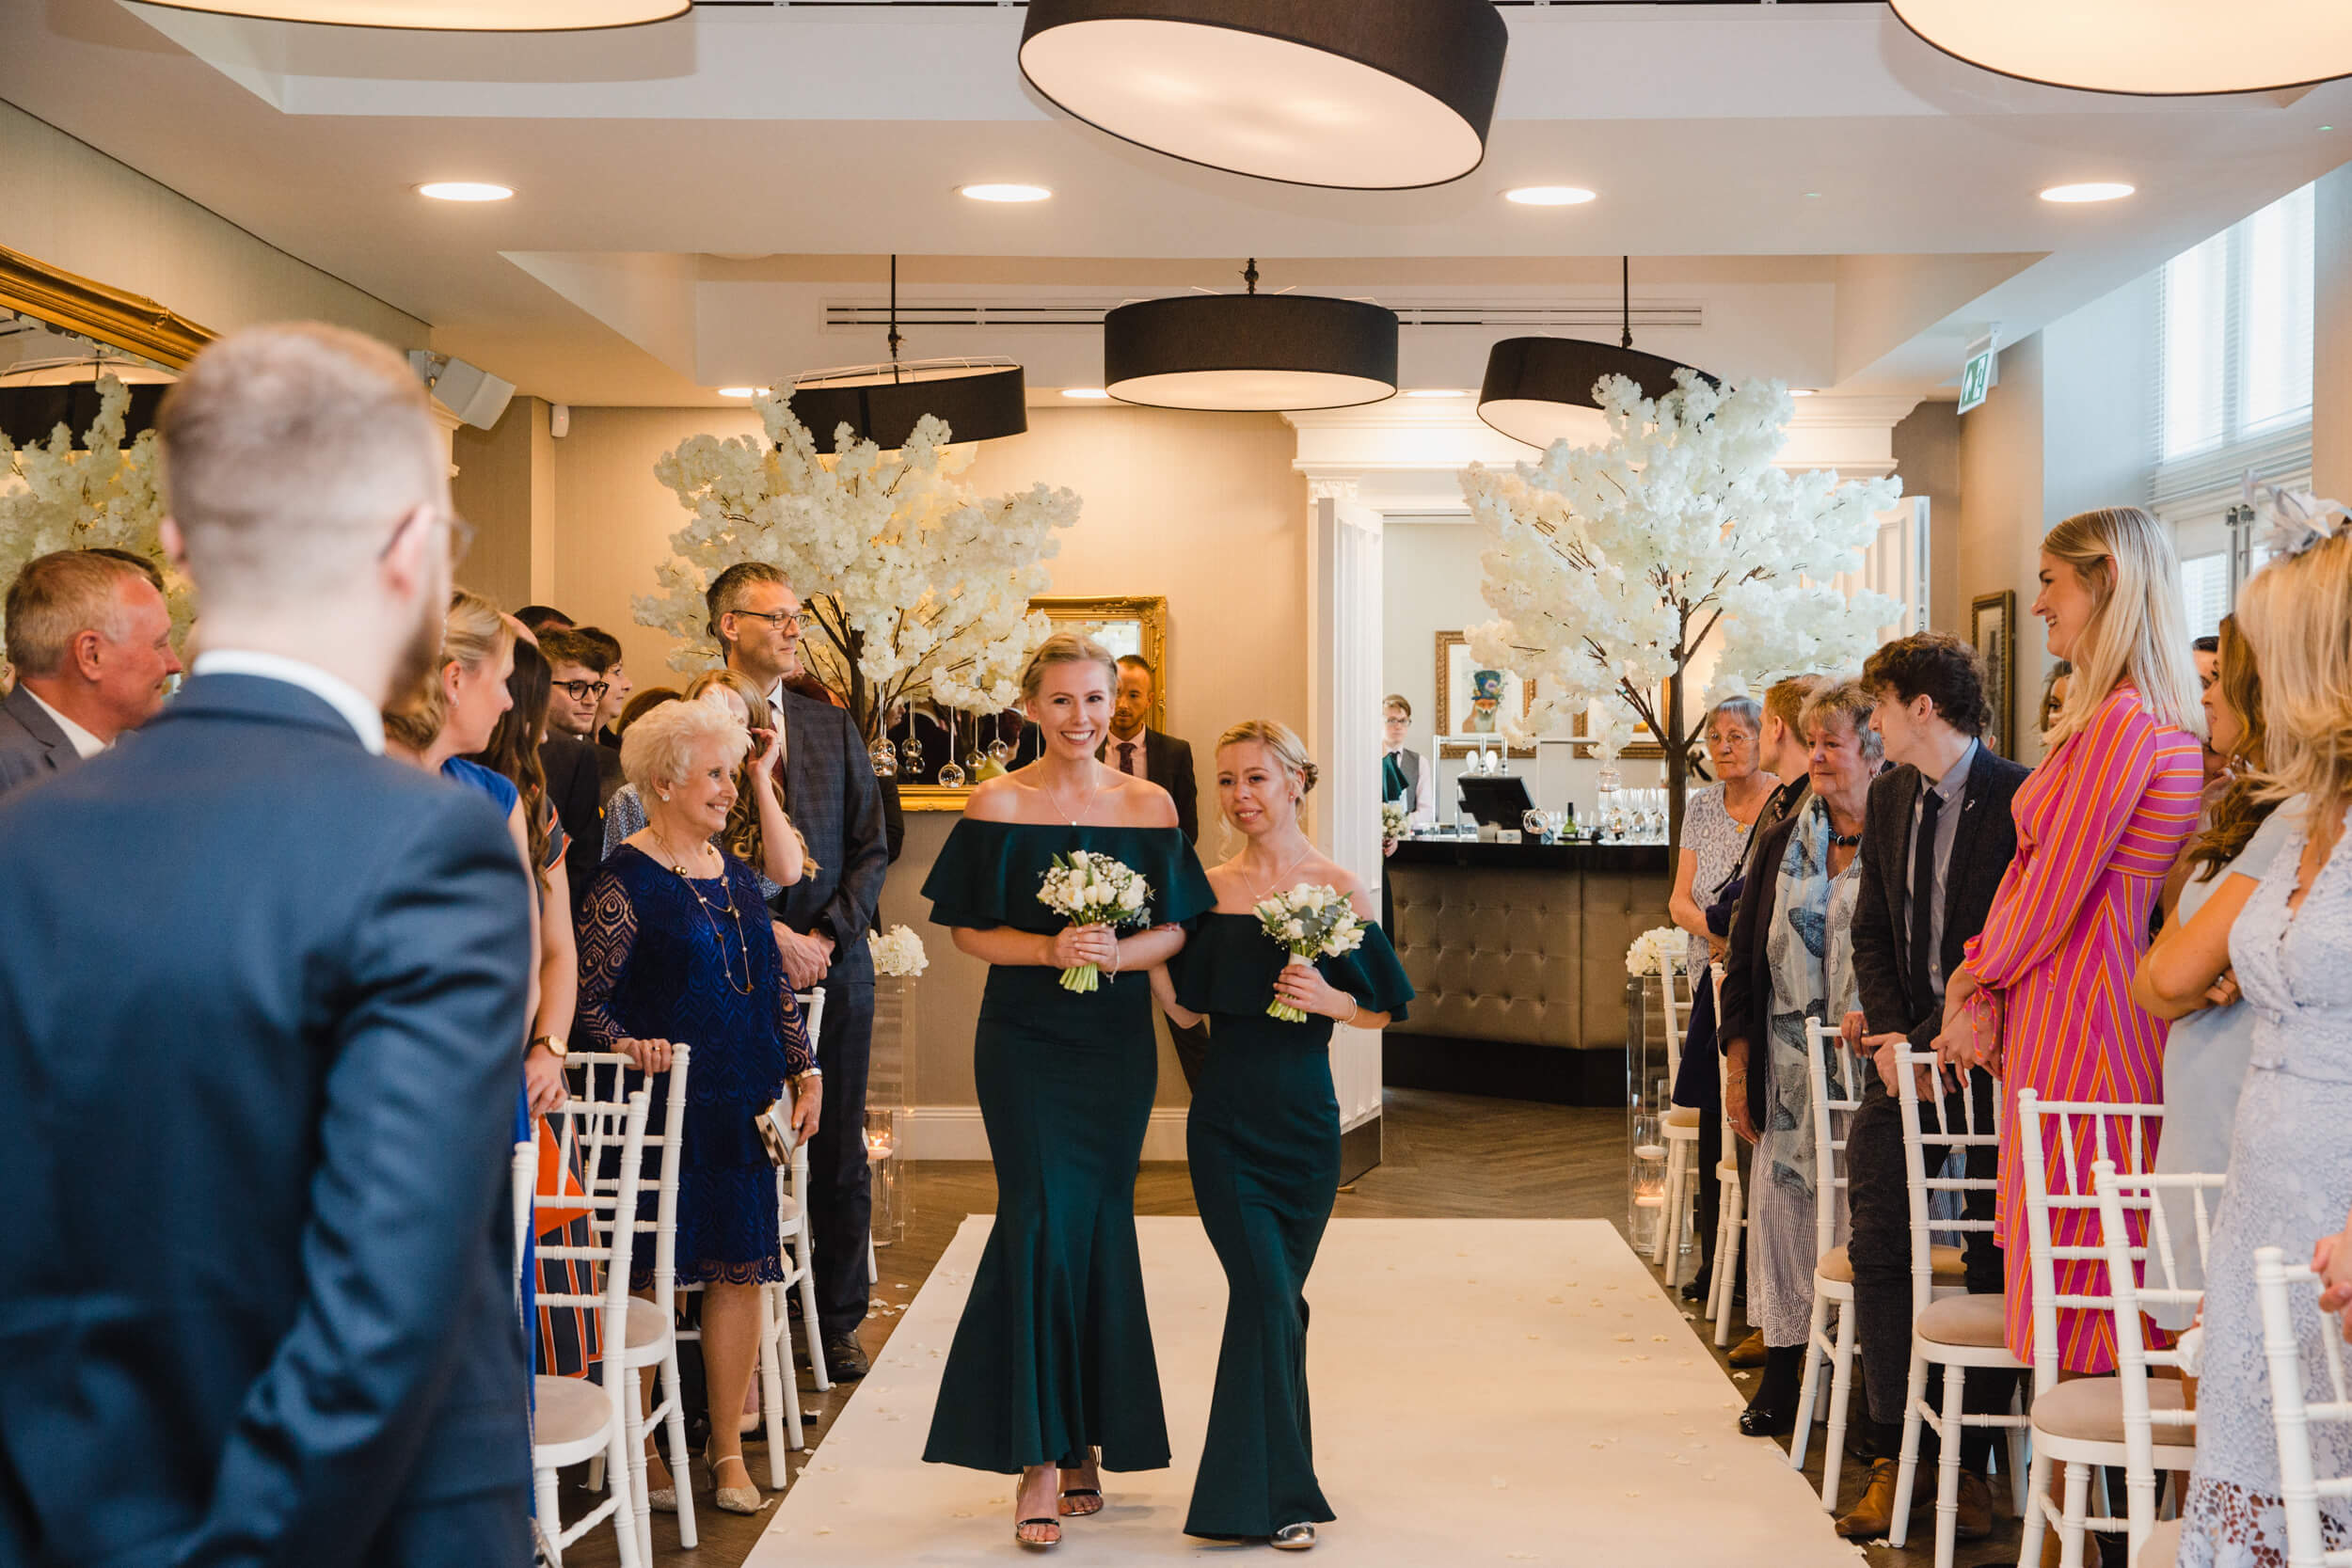 bridesmaids holding bouquets walking down aisle to begin wedding ceremony processional with groom in foreground